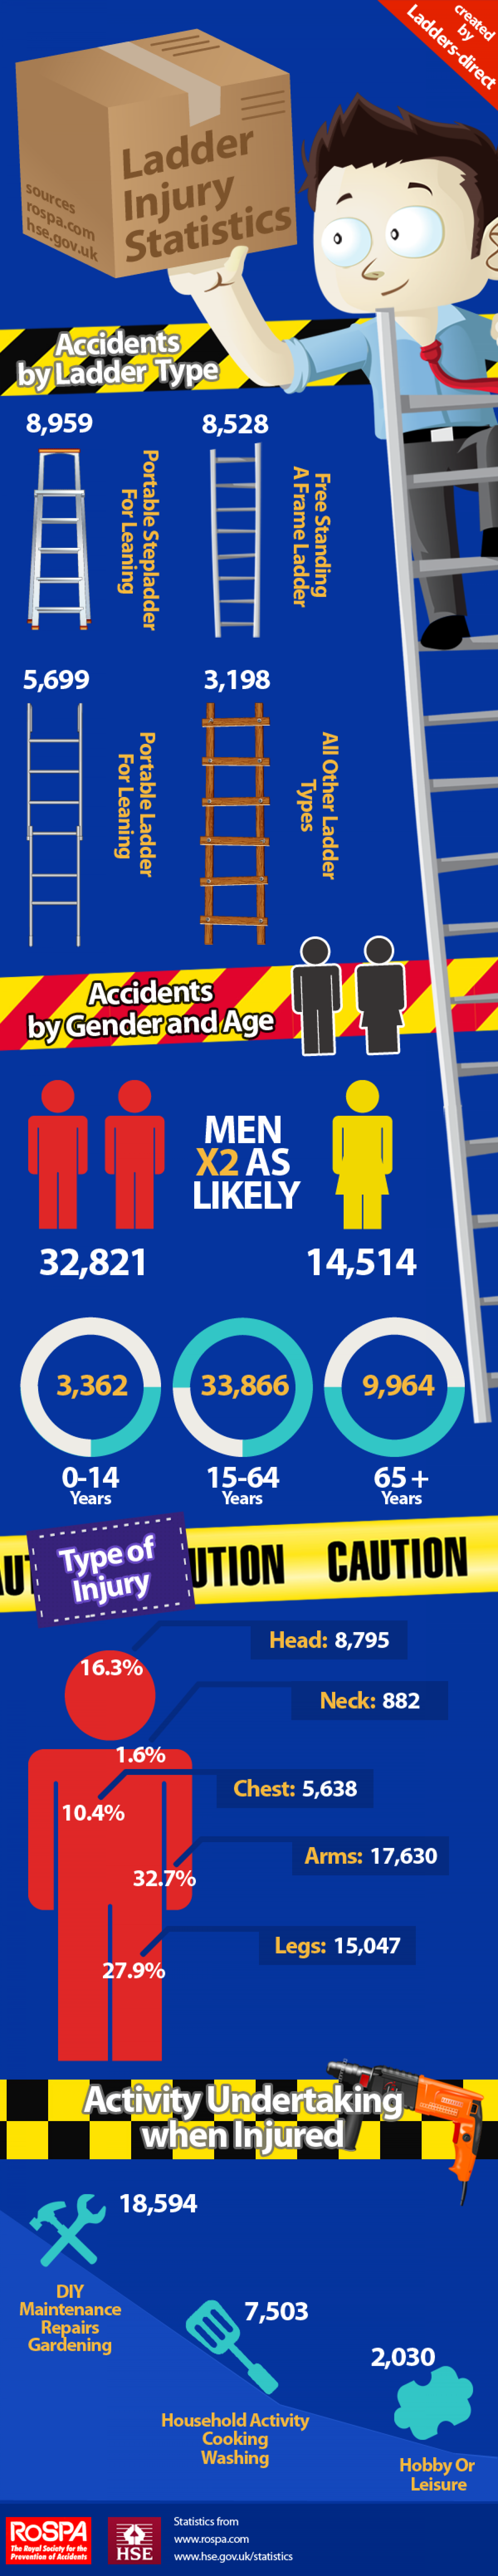 Ladder Injury Statistics Infographic